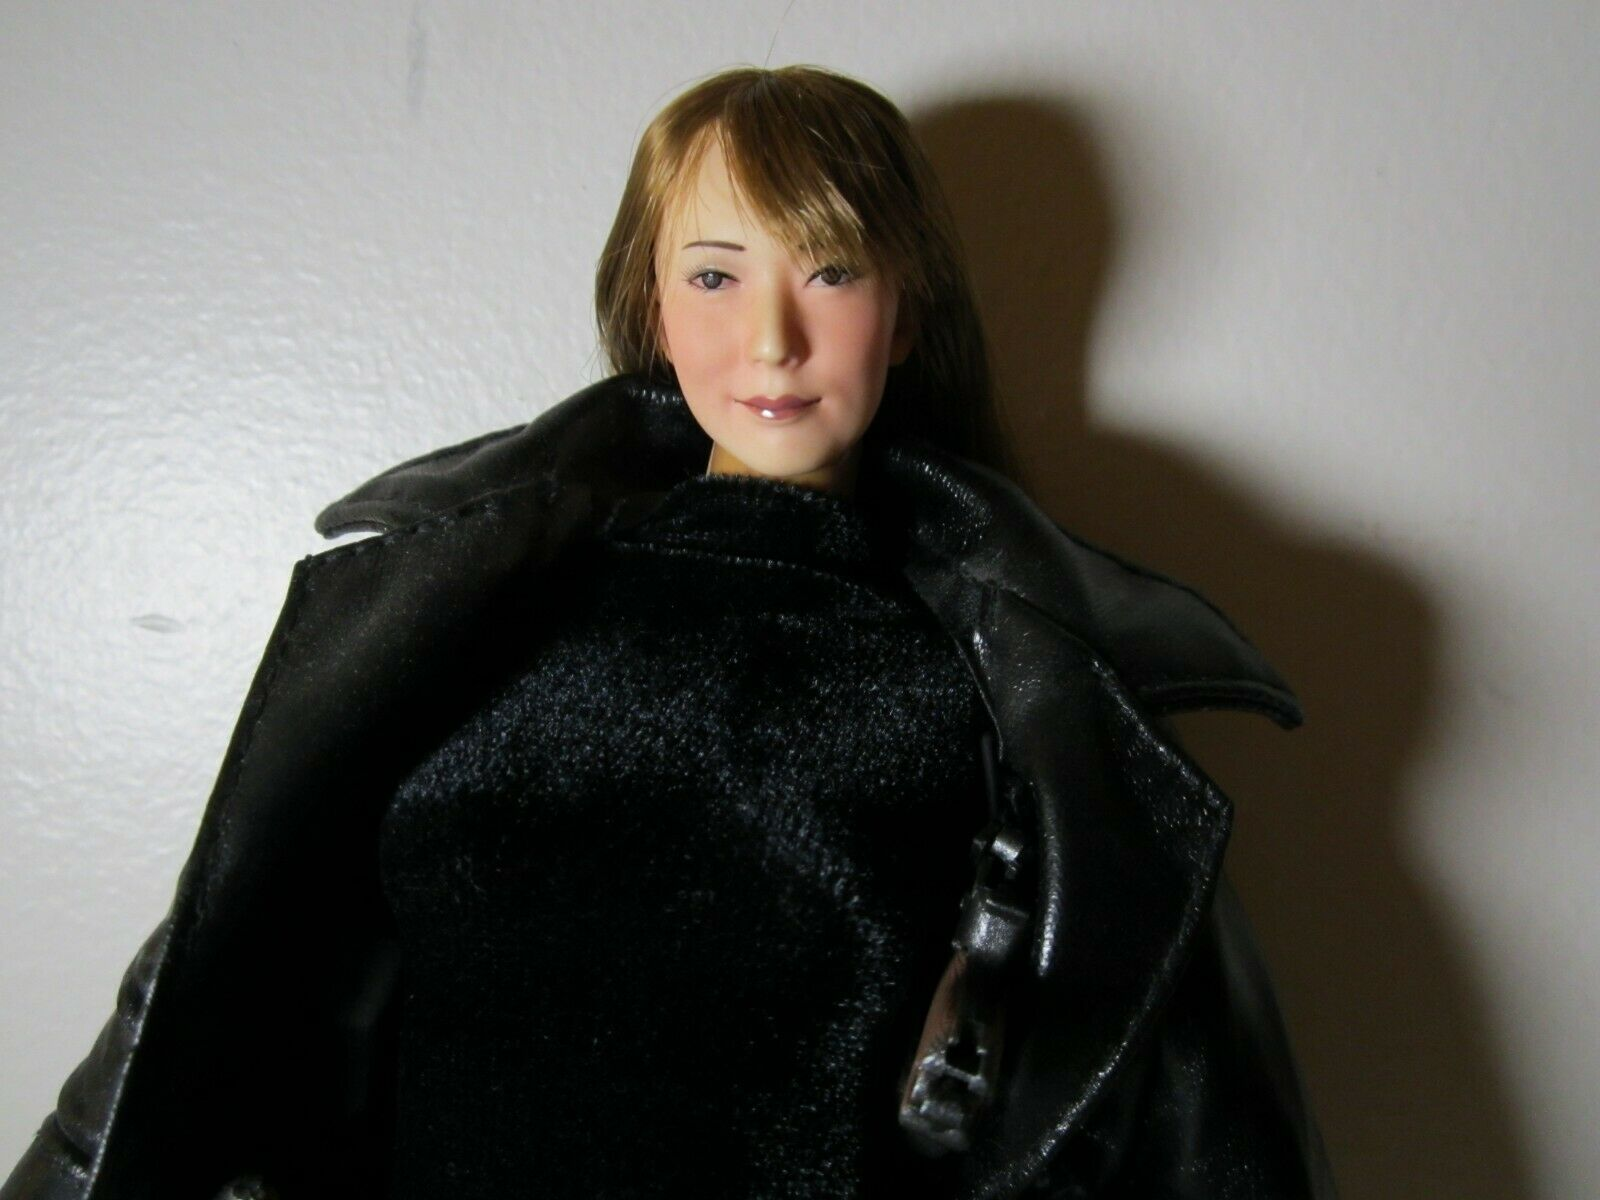 1 6 Sexy Asian Assassin figure with Hatano Yui 3D Scanned head 12  figure